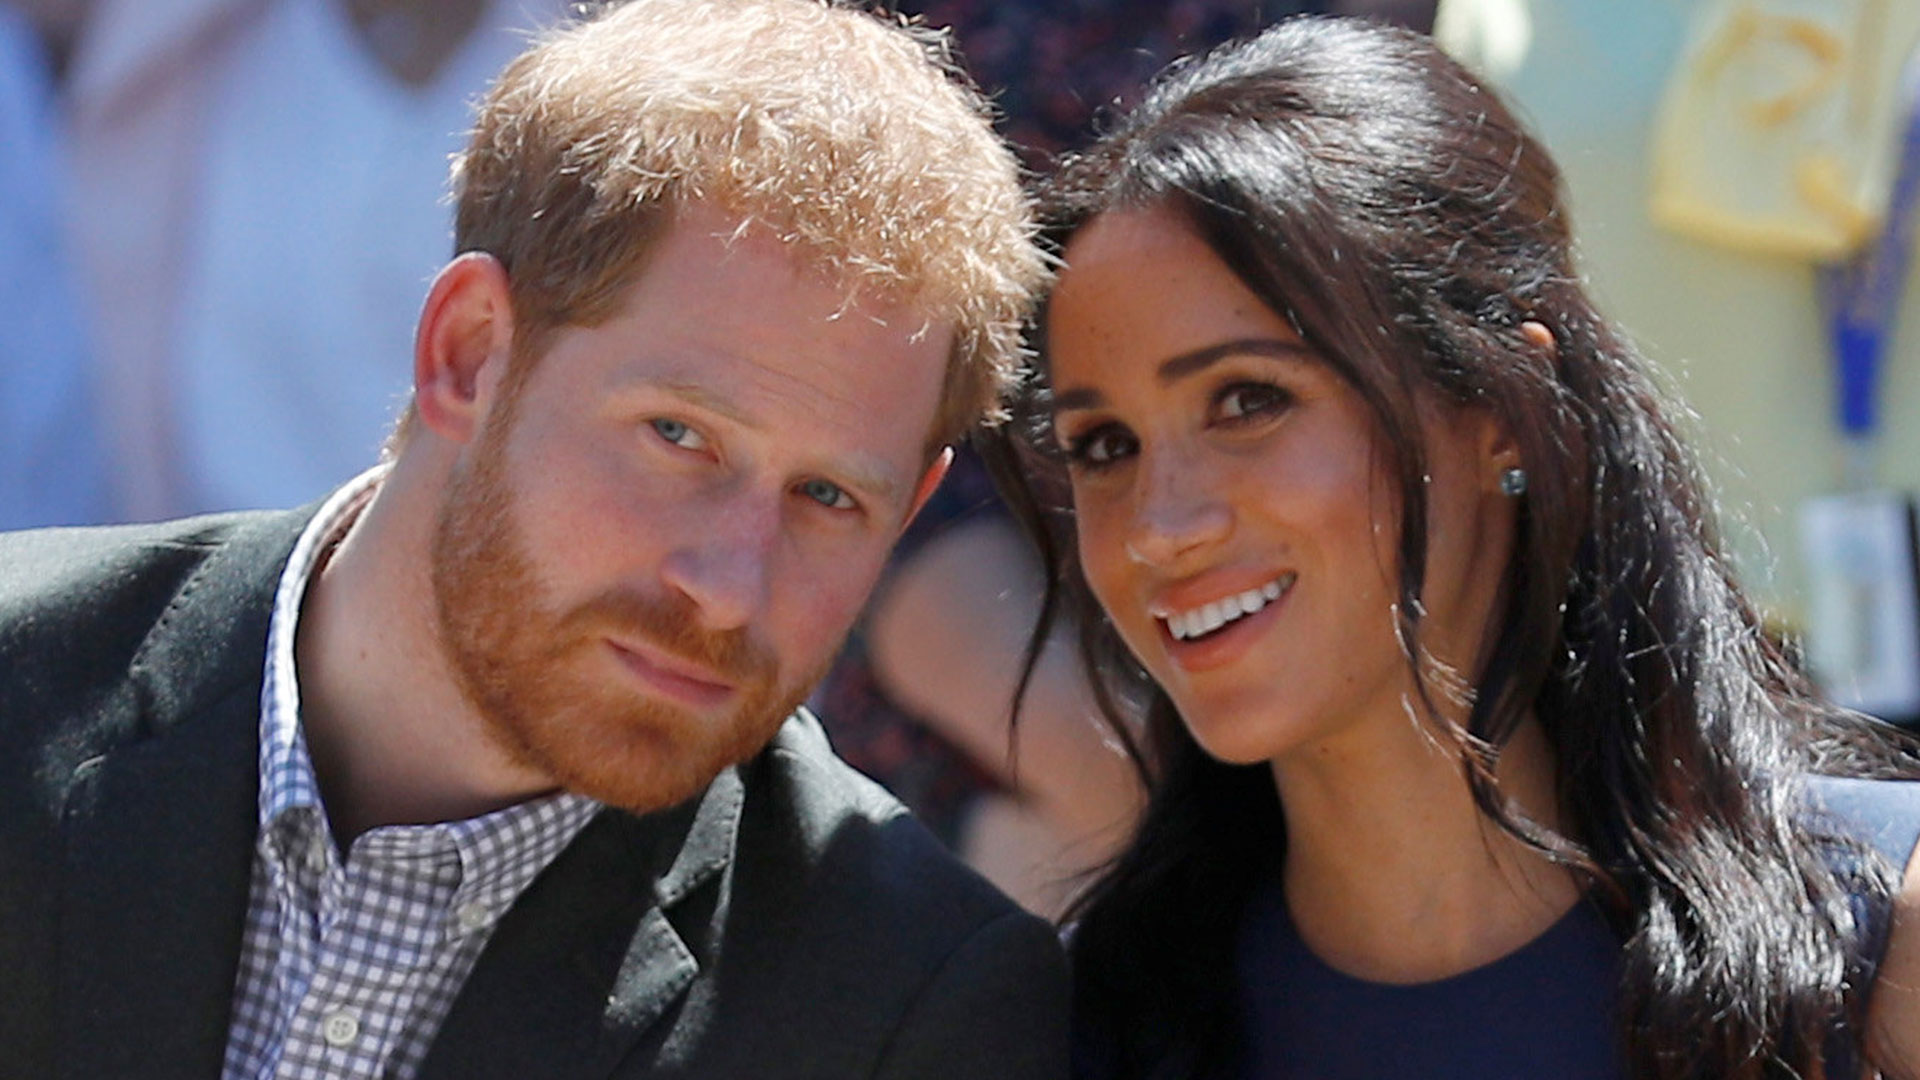 Meghan Markle And Prince Harry Considered Moving To New Zealand Before Royal Exit